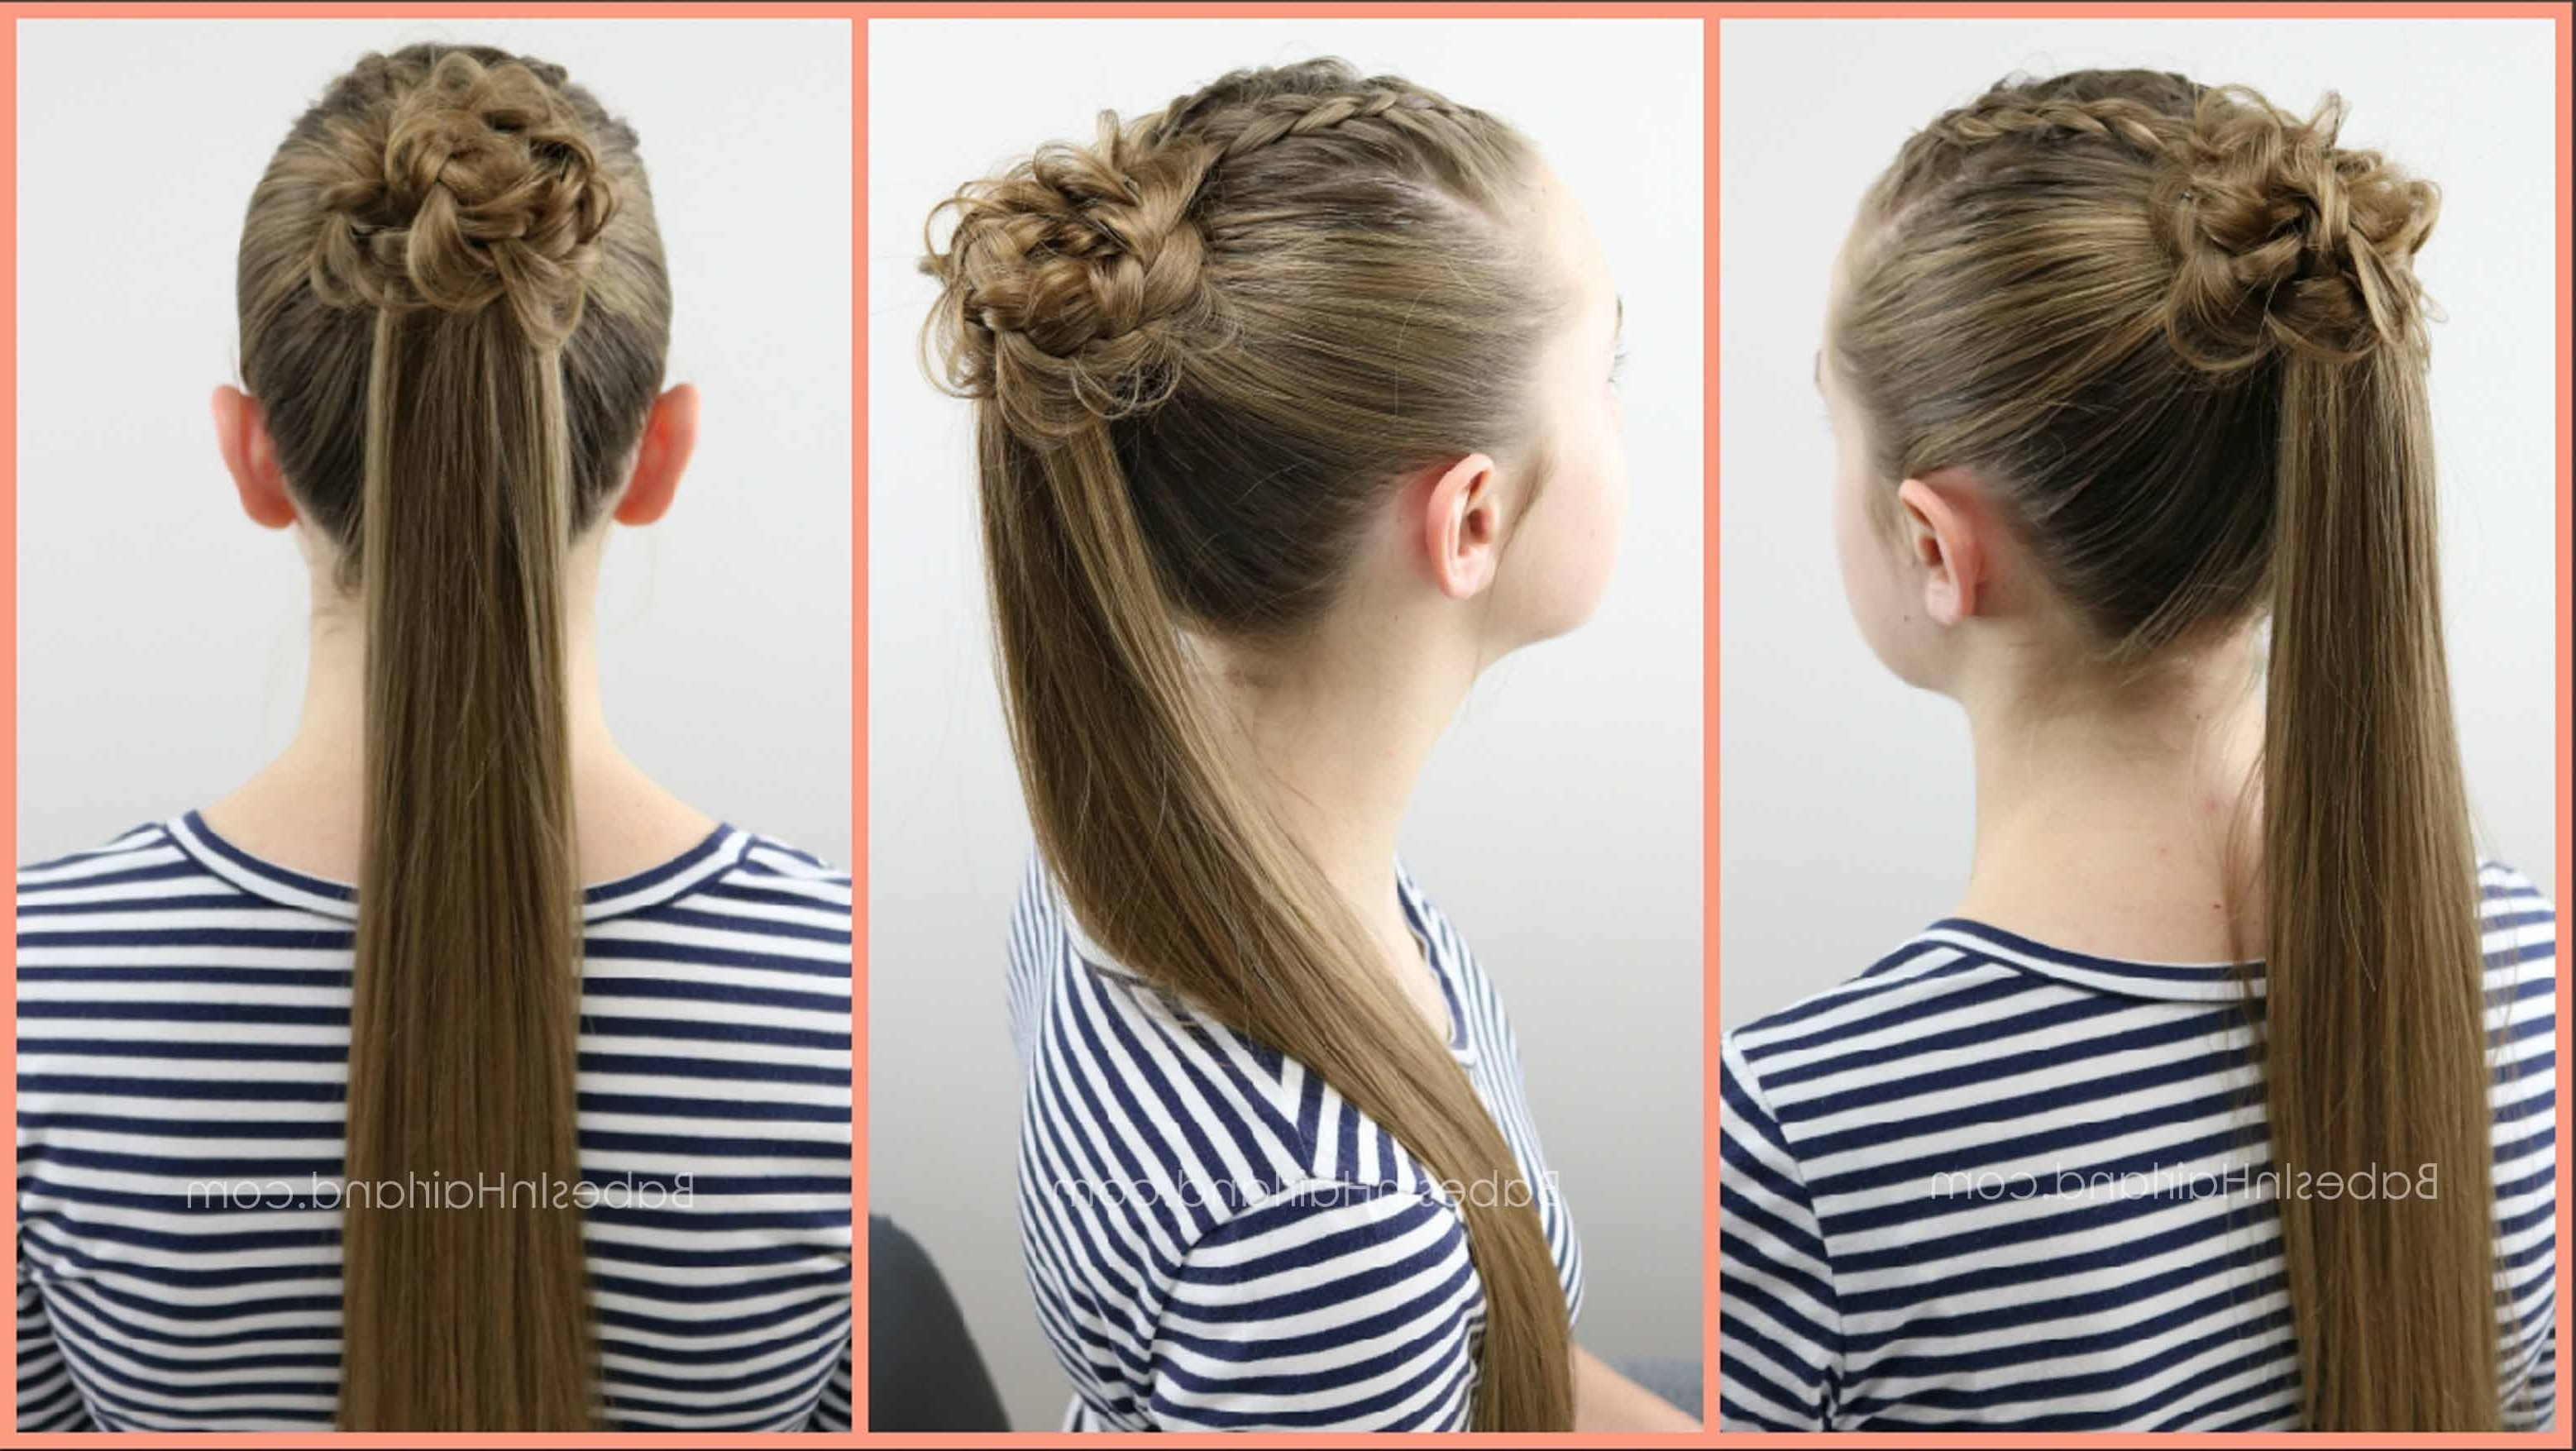 Popular Ponytail Hairstyles With A Braided Element Intended For 2 Dutch Braids 5 Different Hairstyles (View 9 of 20)